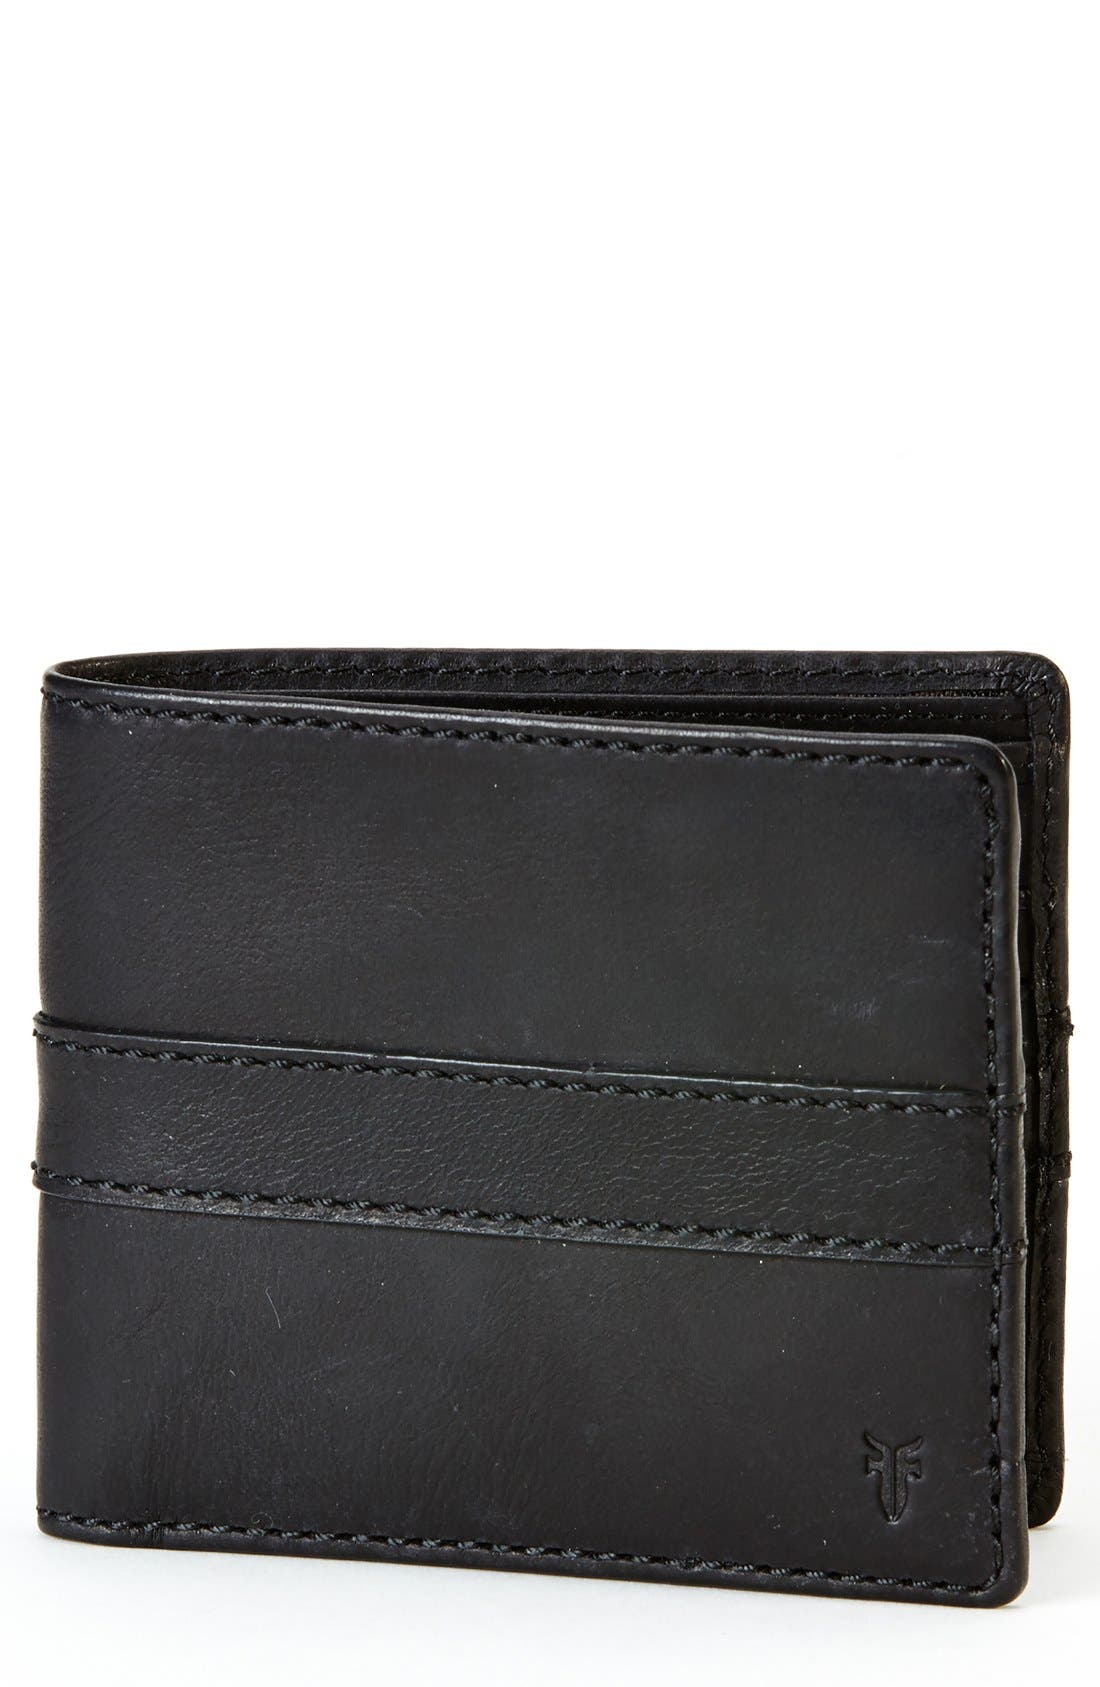 'Oliver' Leather Billfold Wallet,                             Main thumbnail 1, color,                             001